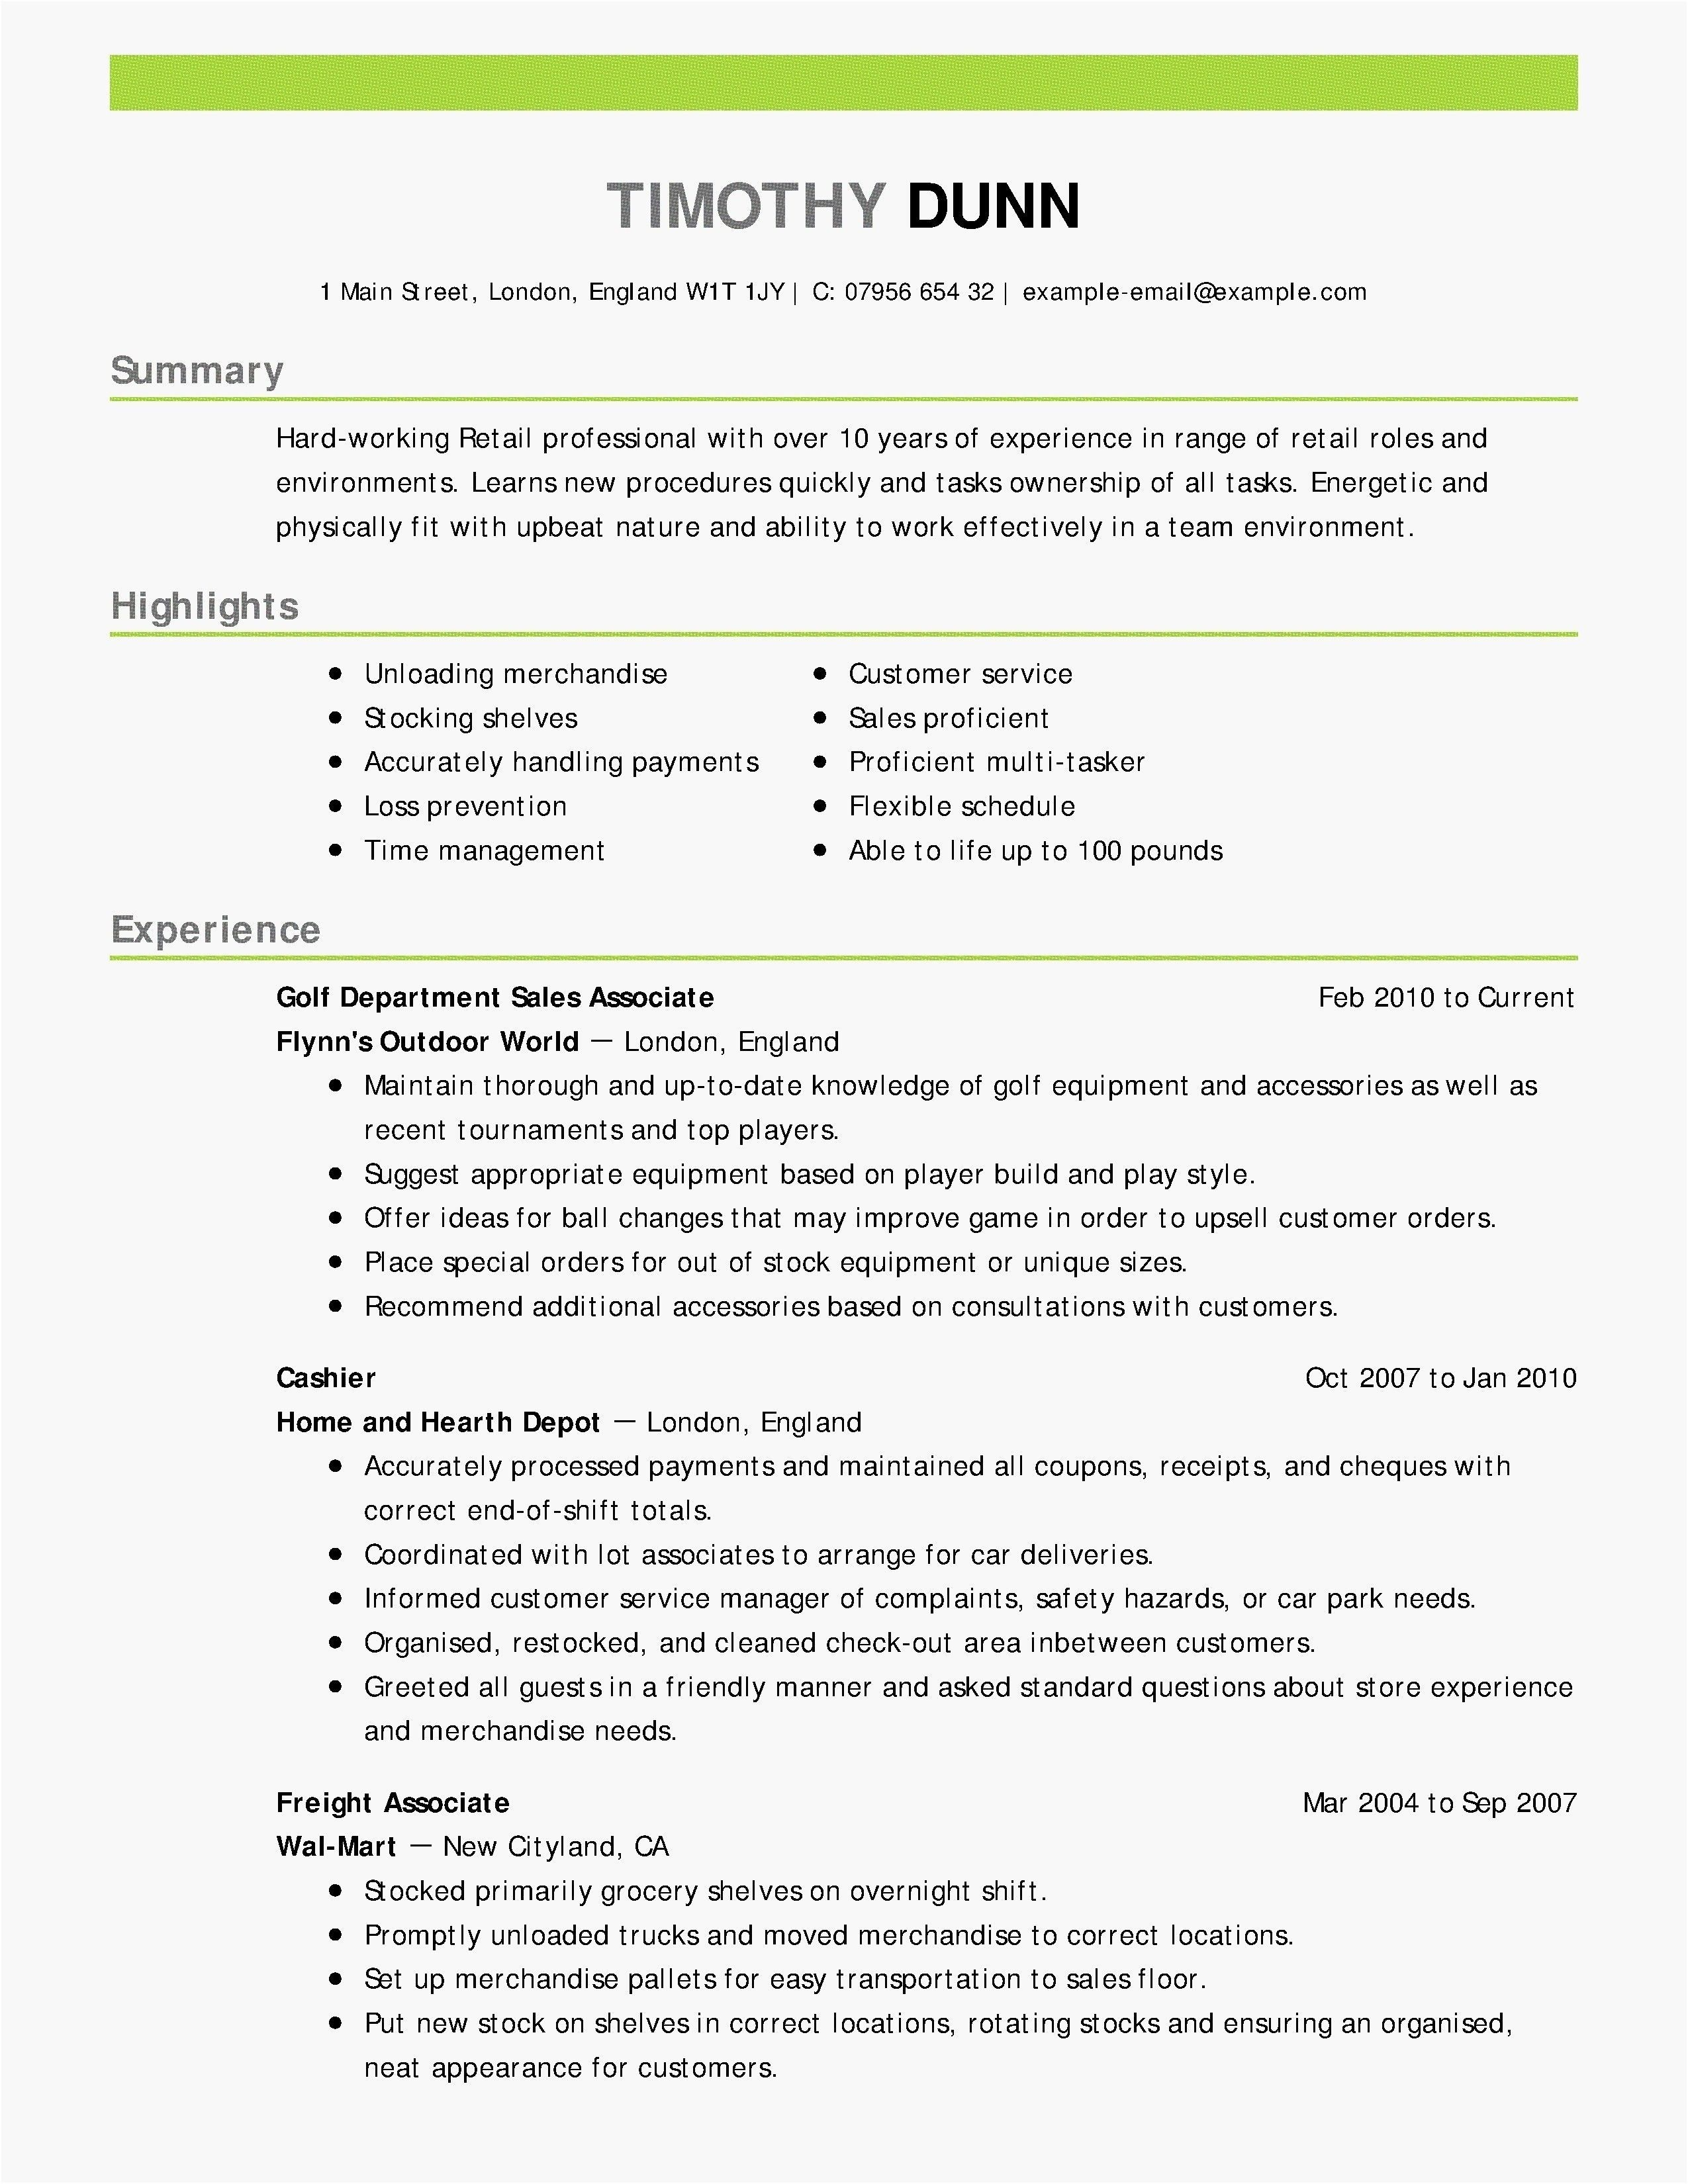 30 Correctional Officer Resume Objective in 2020 (With